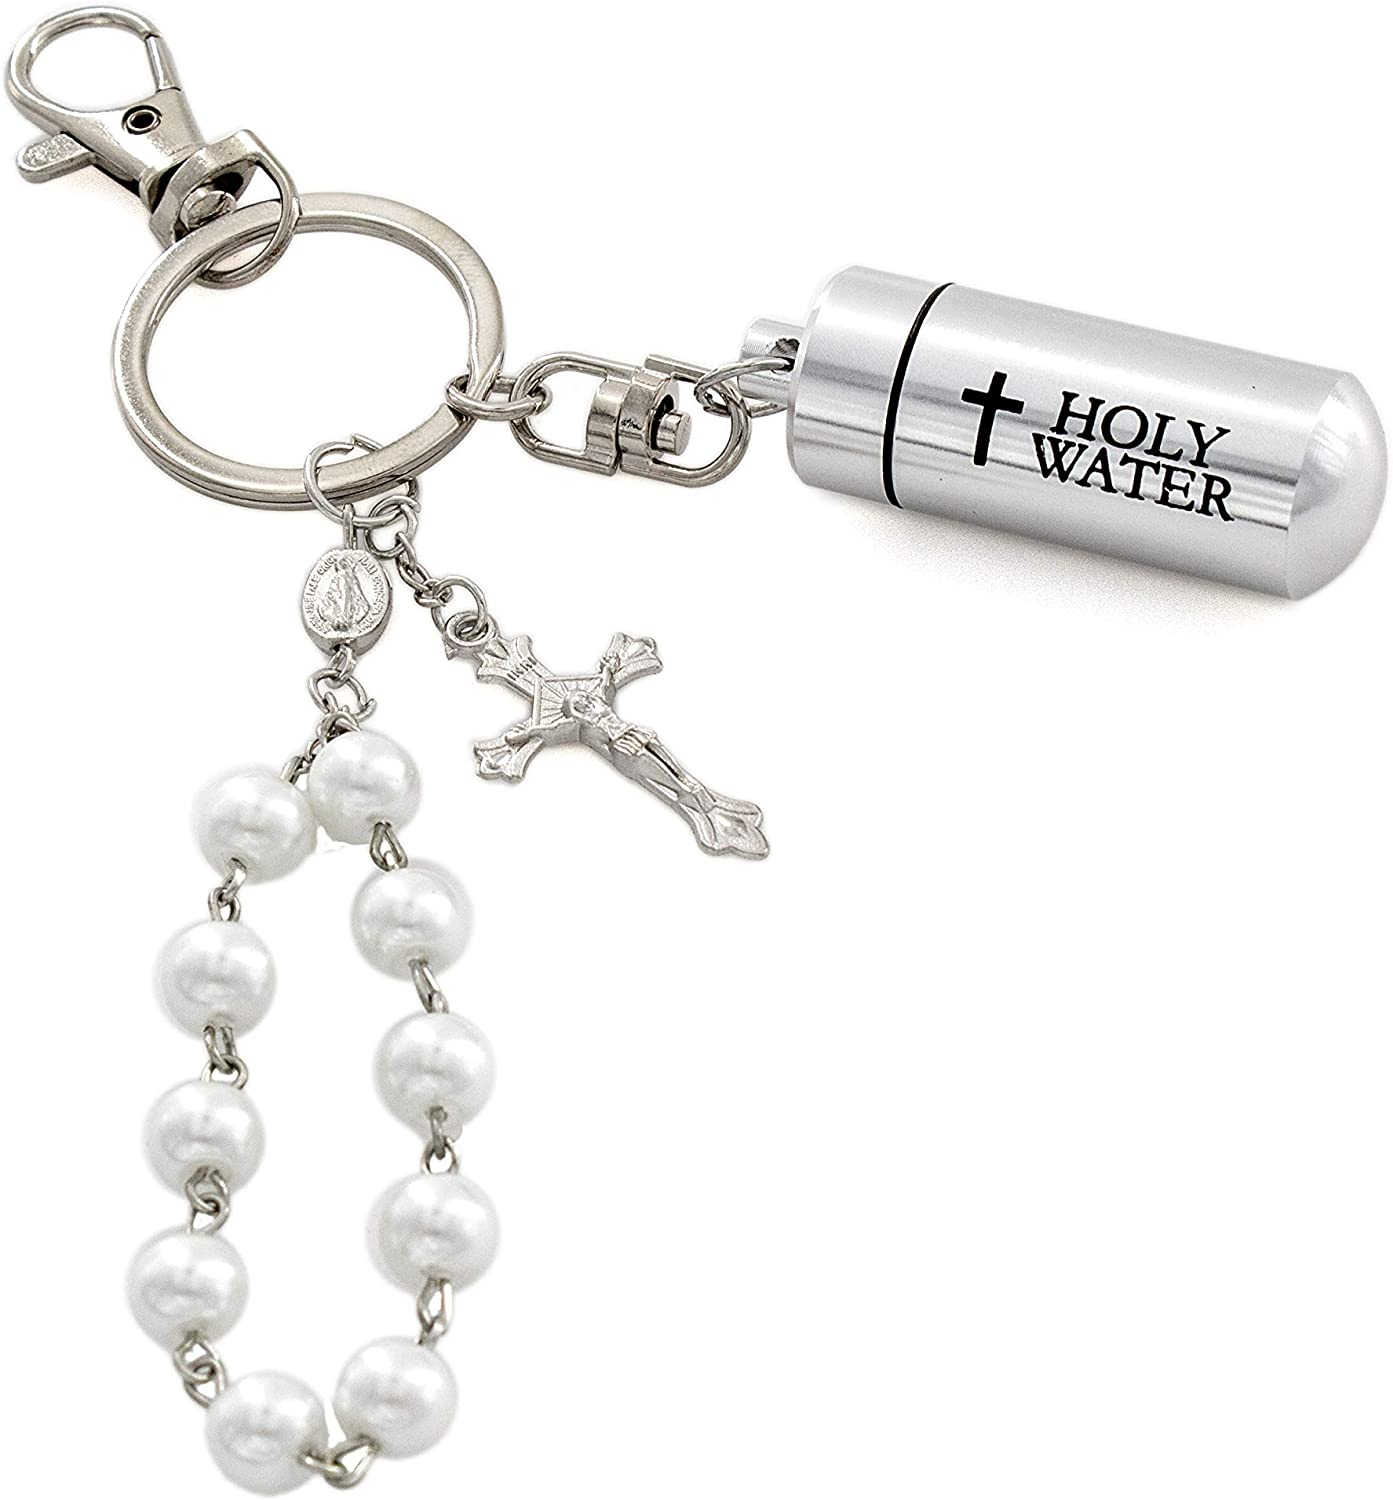 Includes St Christopher Prayer Card Elysian Gift Shop Holy Water Key Chain with Black Hematite One Decade Rosary with Silver Metal Crucifix Cross Charm Dangle and Holy Water Vial Black